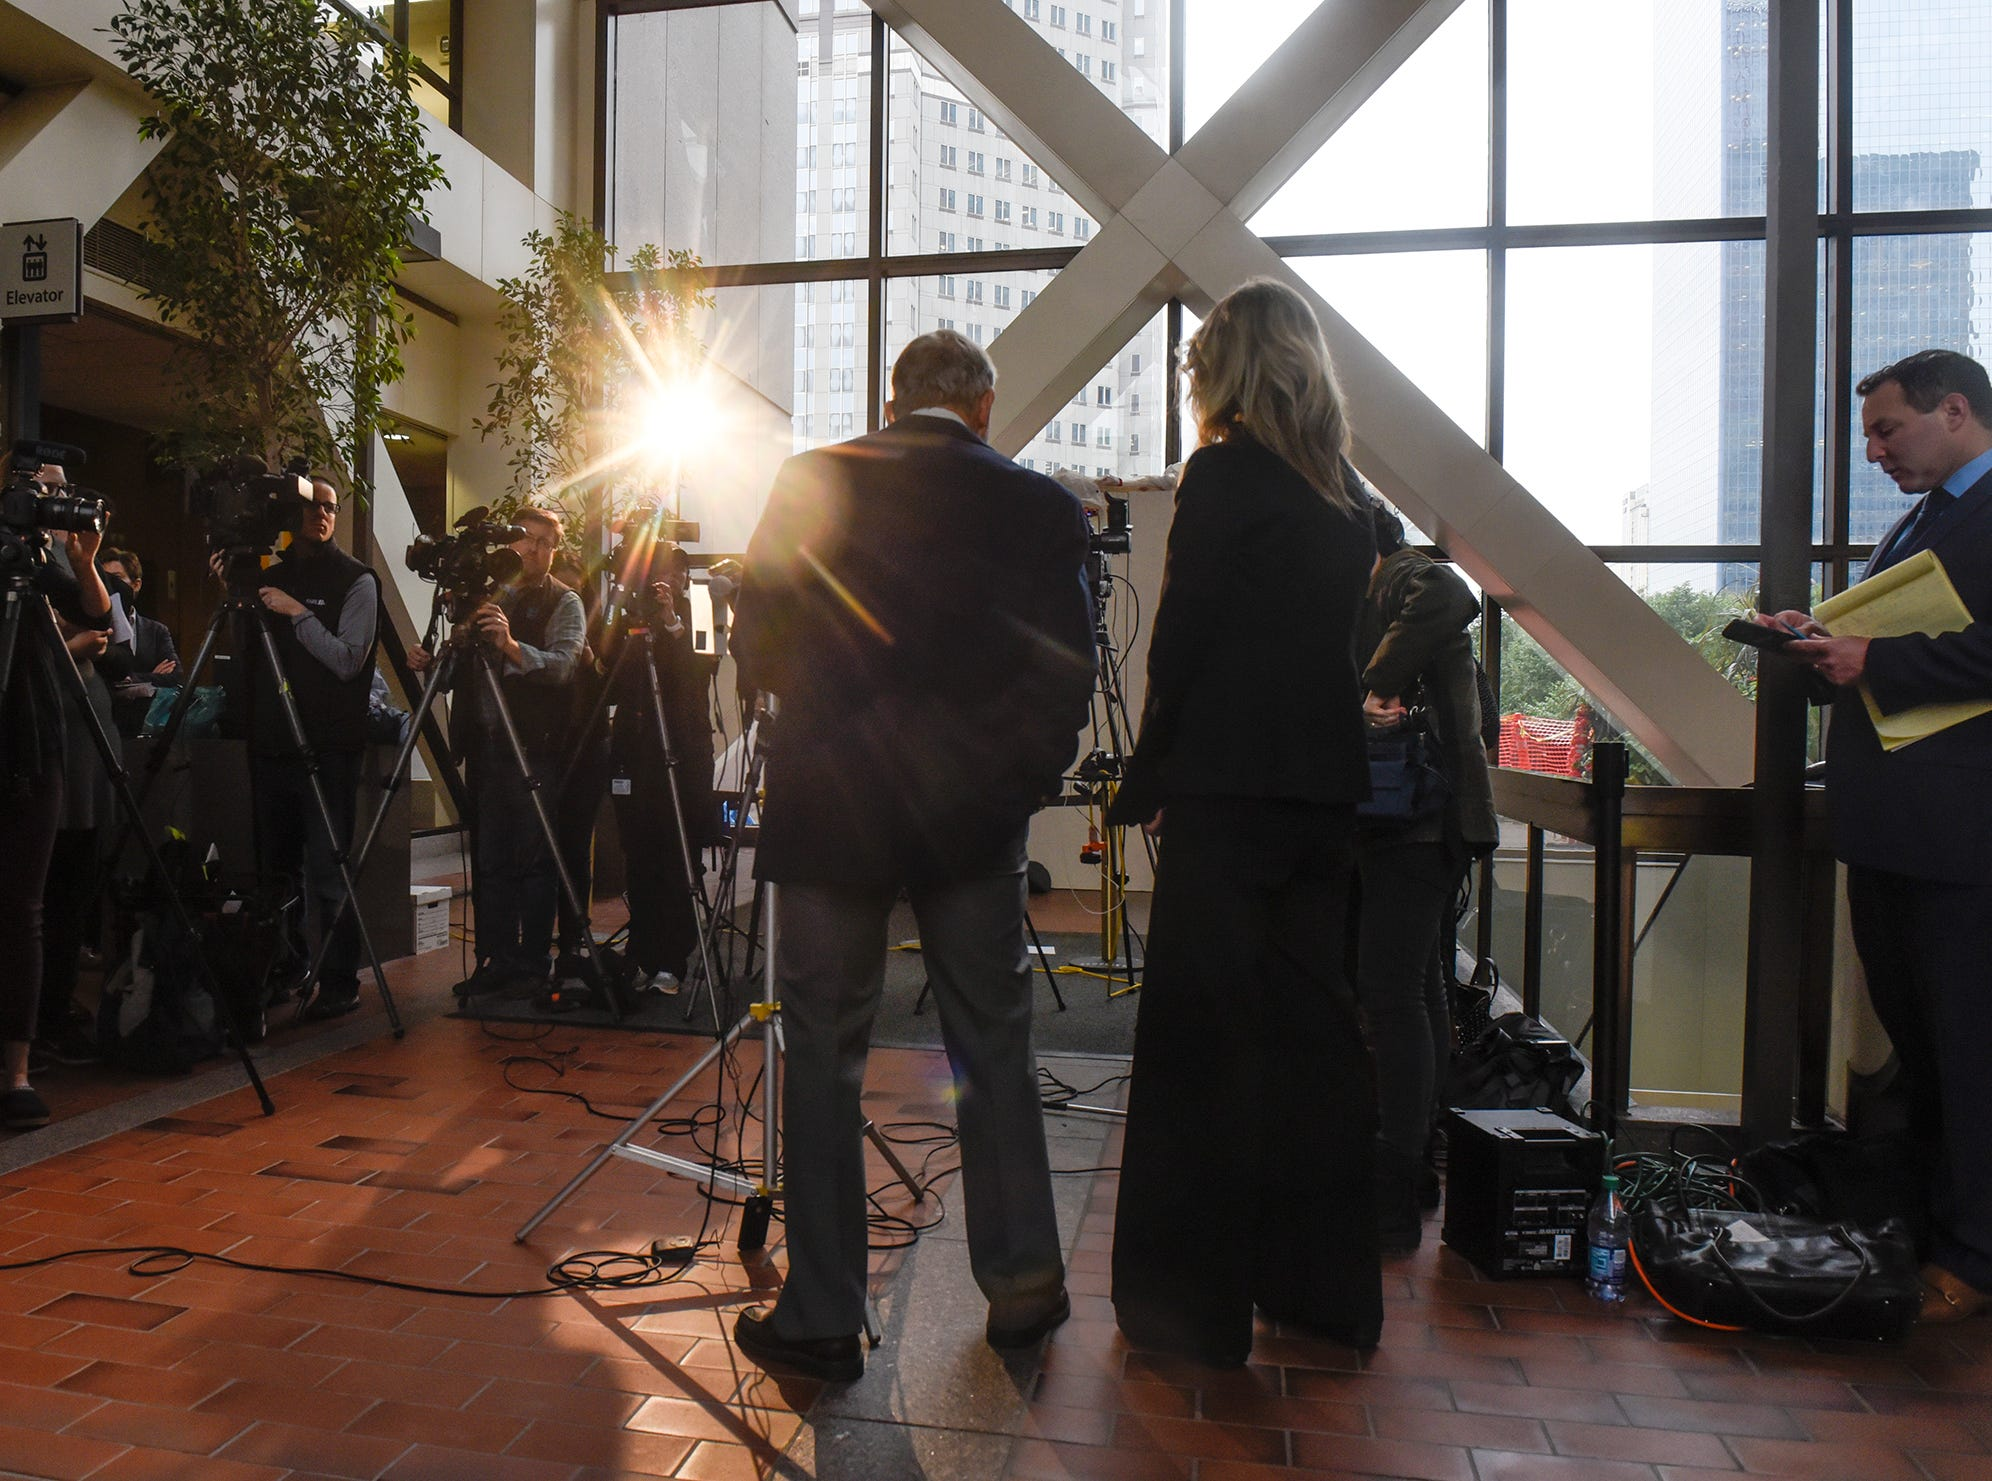 Media crews surround retired FBI agent Steve Gilkerson as he speaks during a press conference Tuesday, Oct. 2, at the Hennepin County Government Center in Minneapolis.